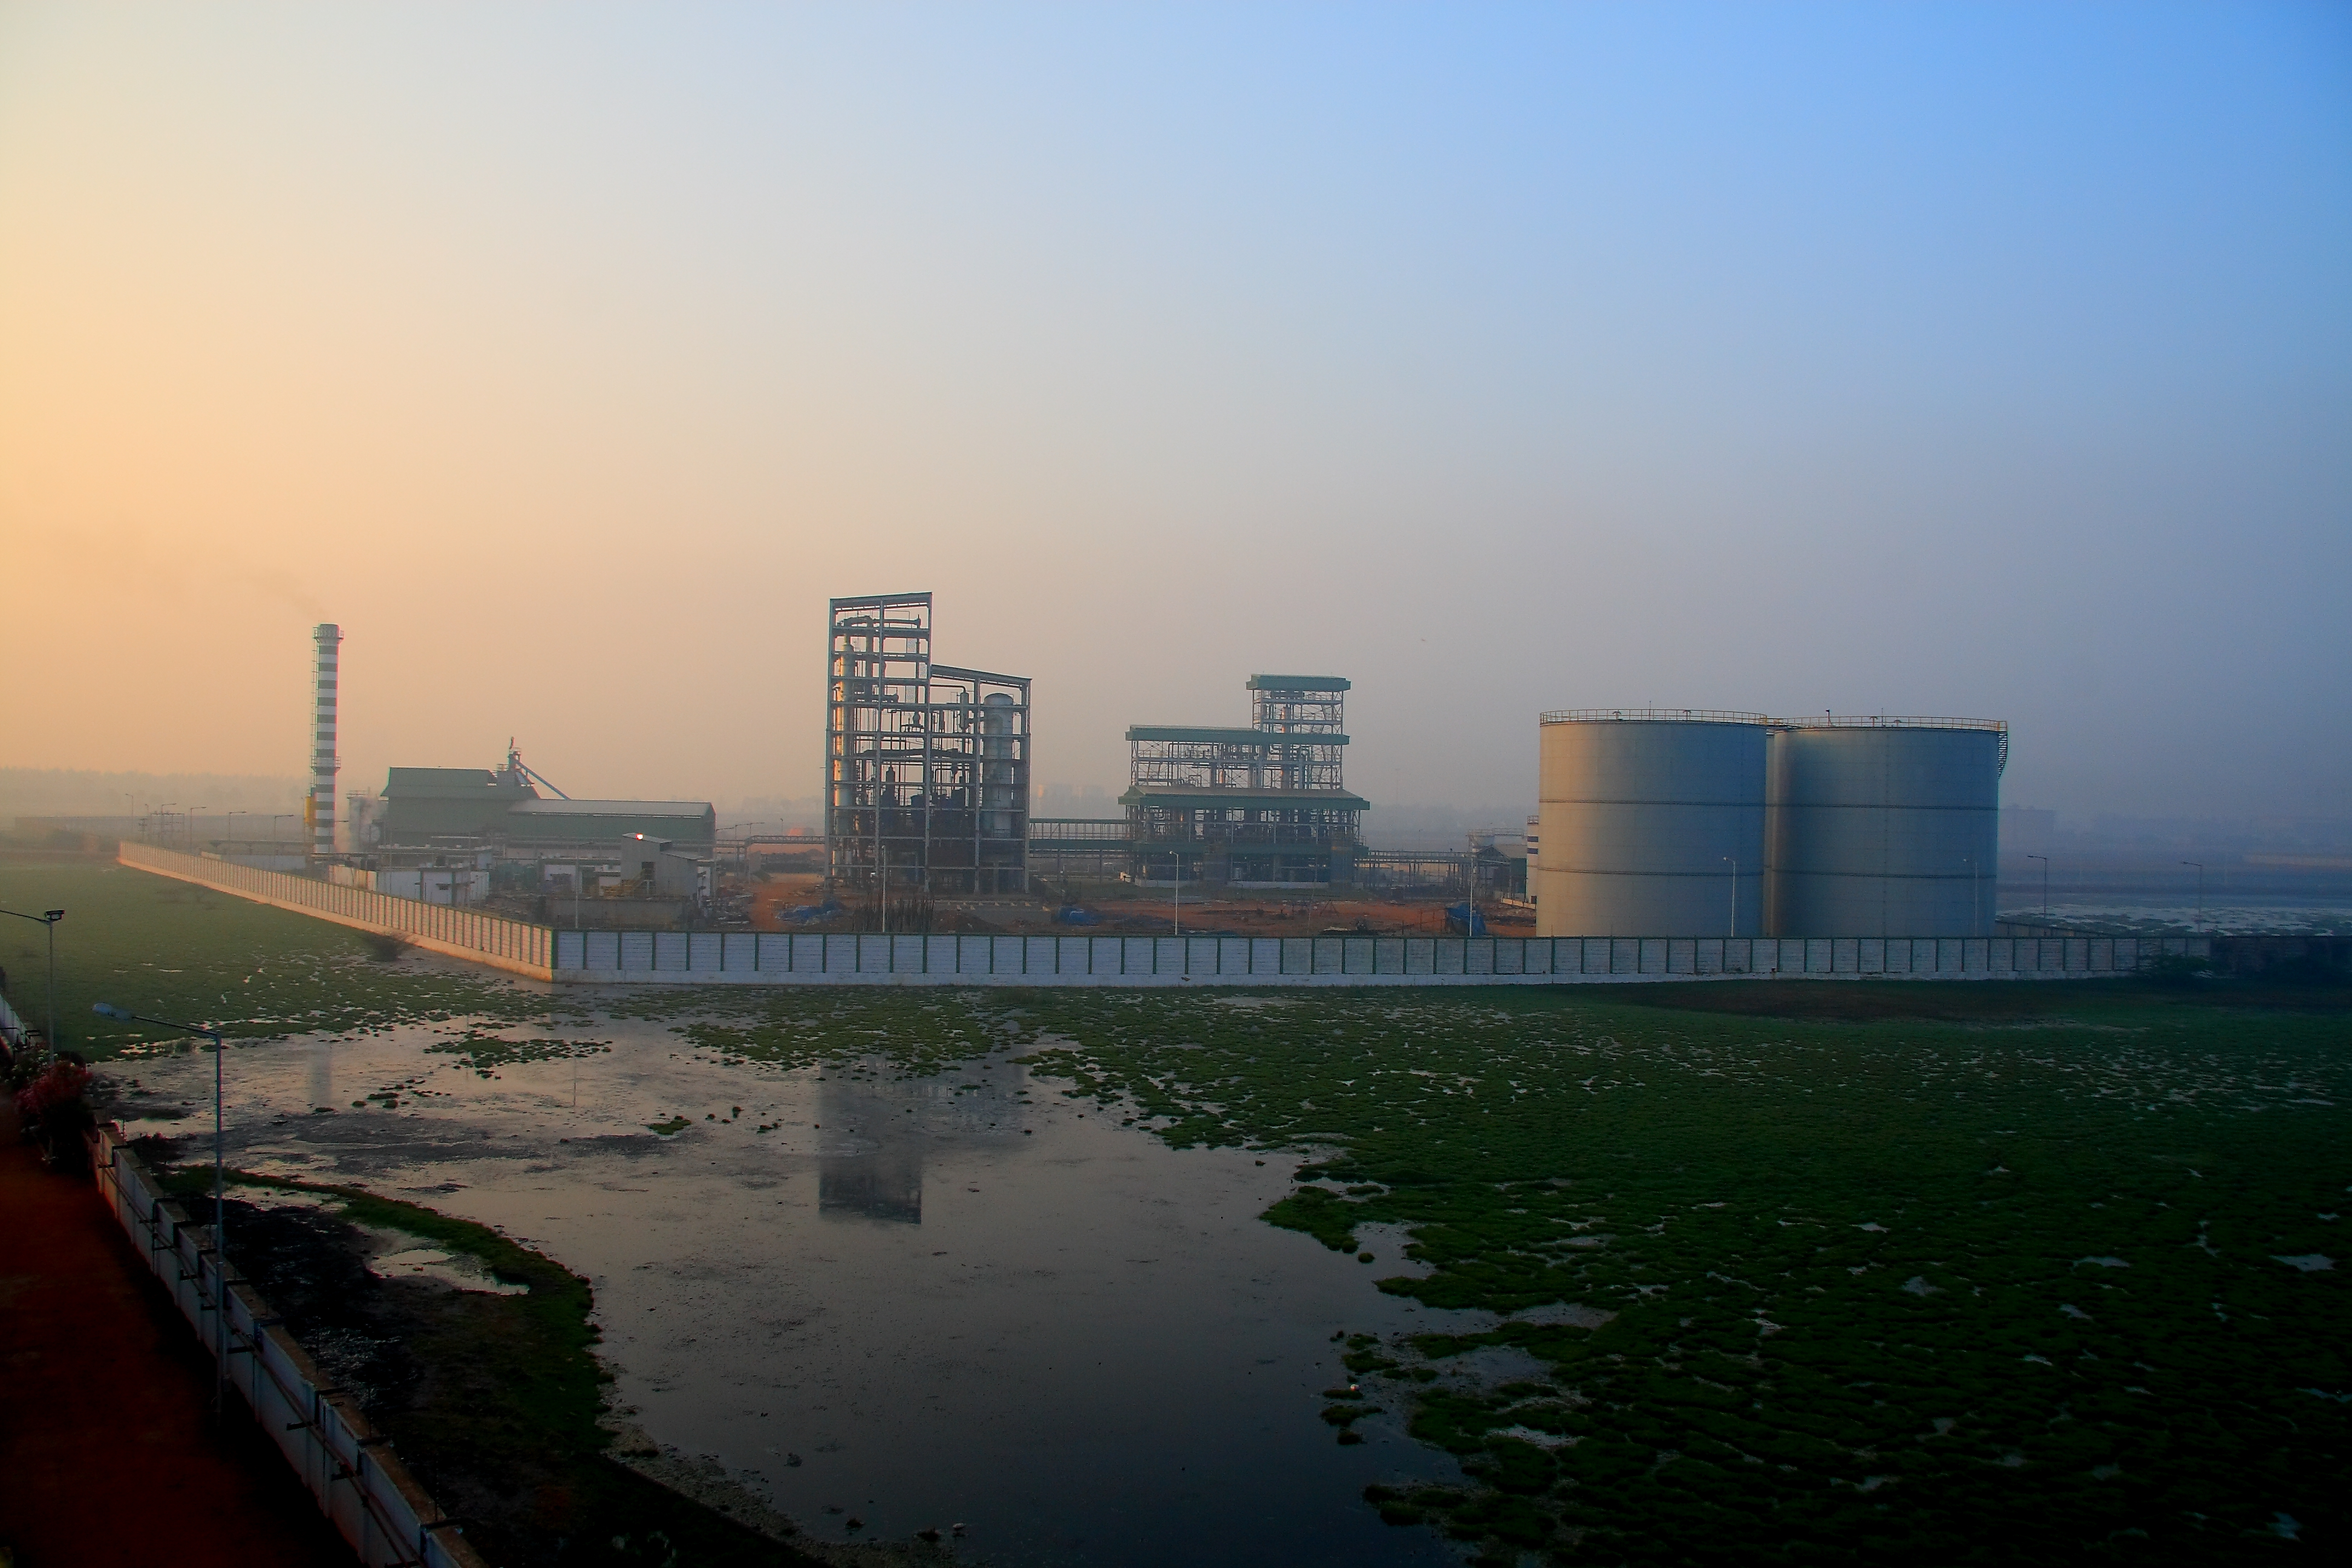 Integrated fuels and chemical production facility in Kakinada, India